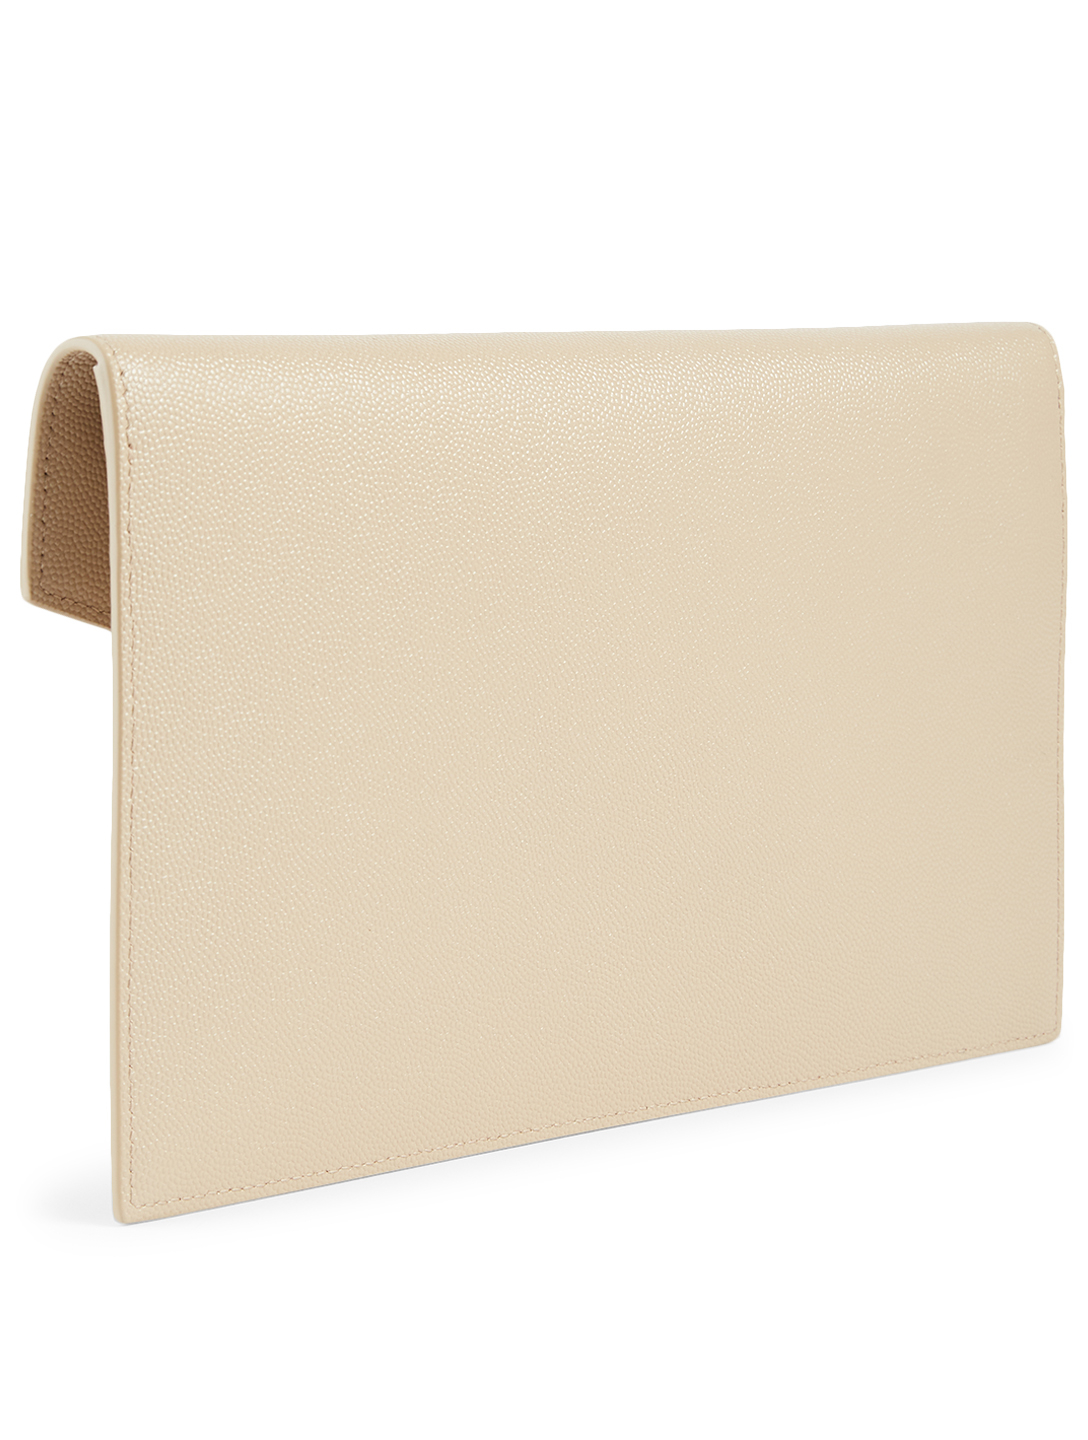 SAINT LAURENT Medium Uptown YSL Monogram Leather Envelope Clutch Bag Women's Beige